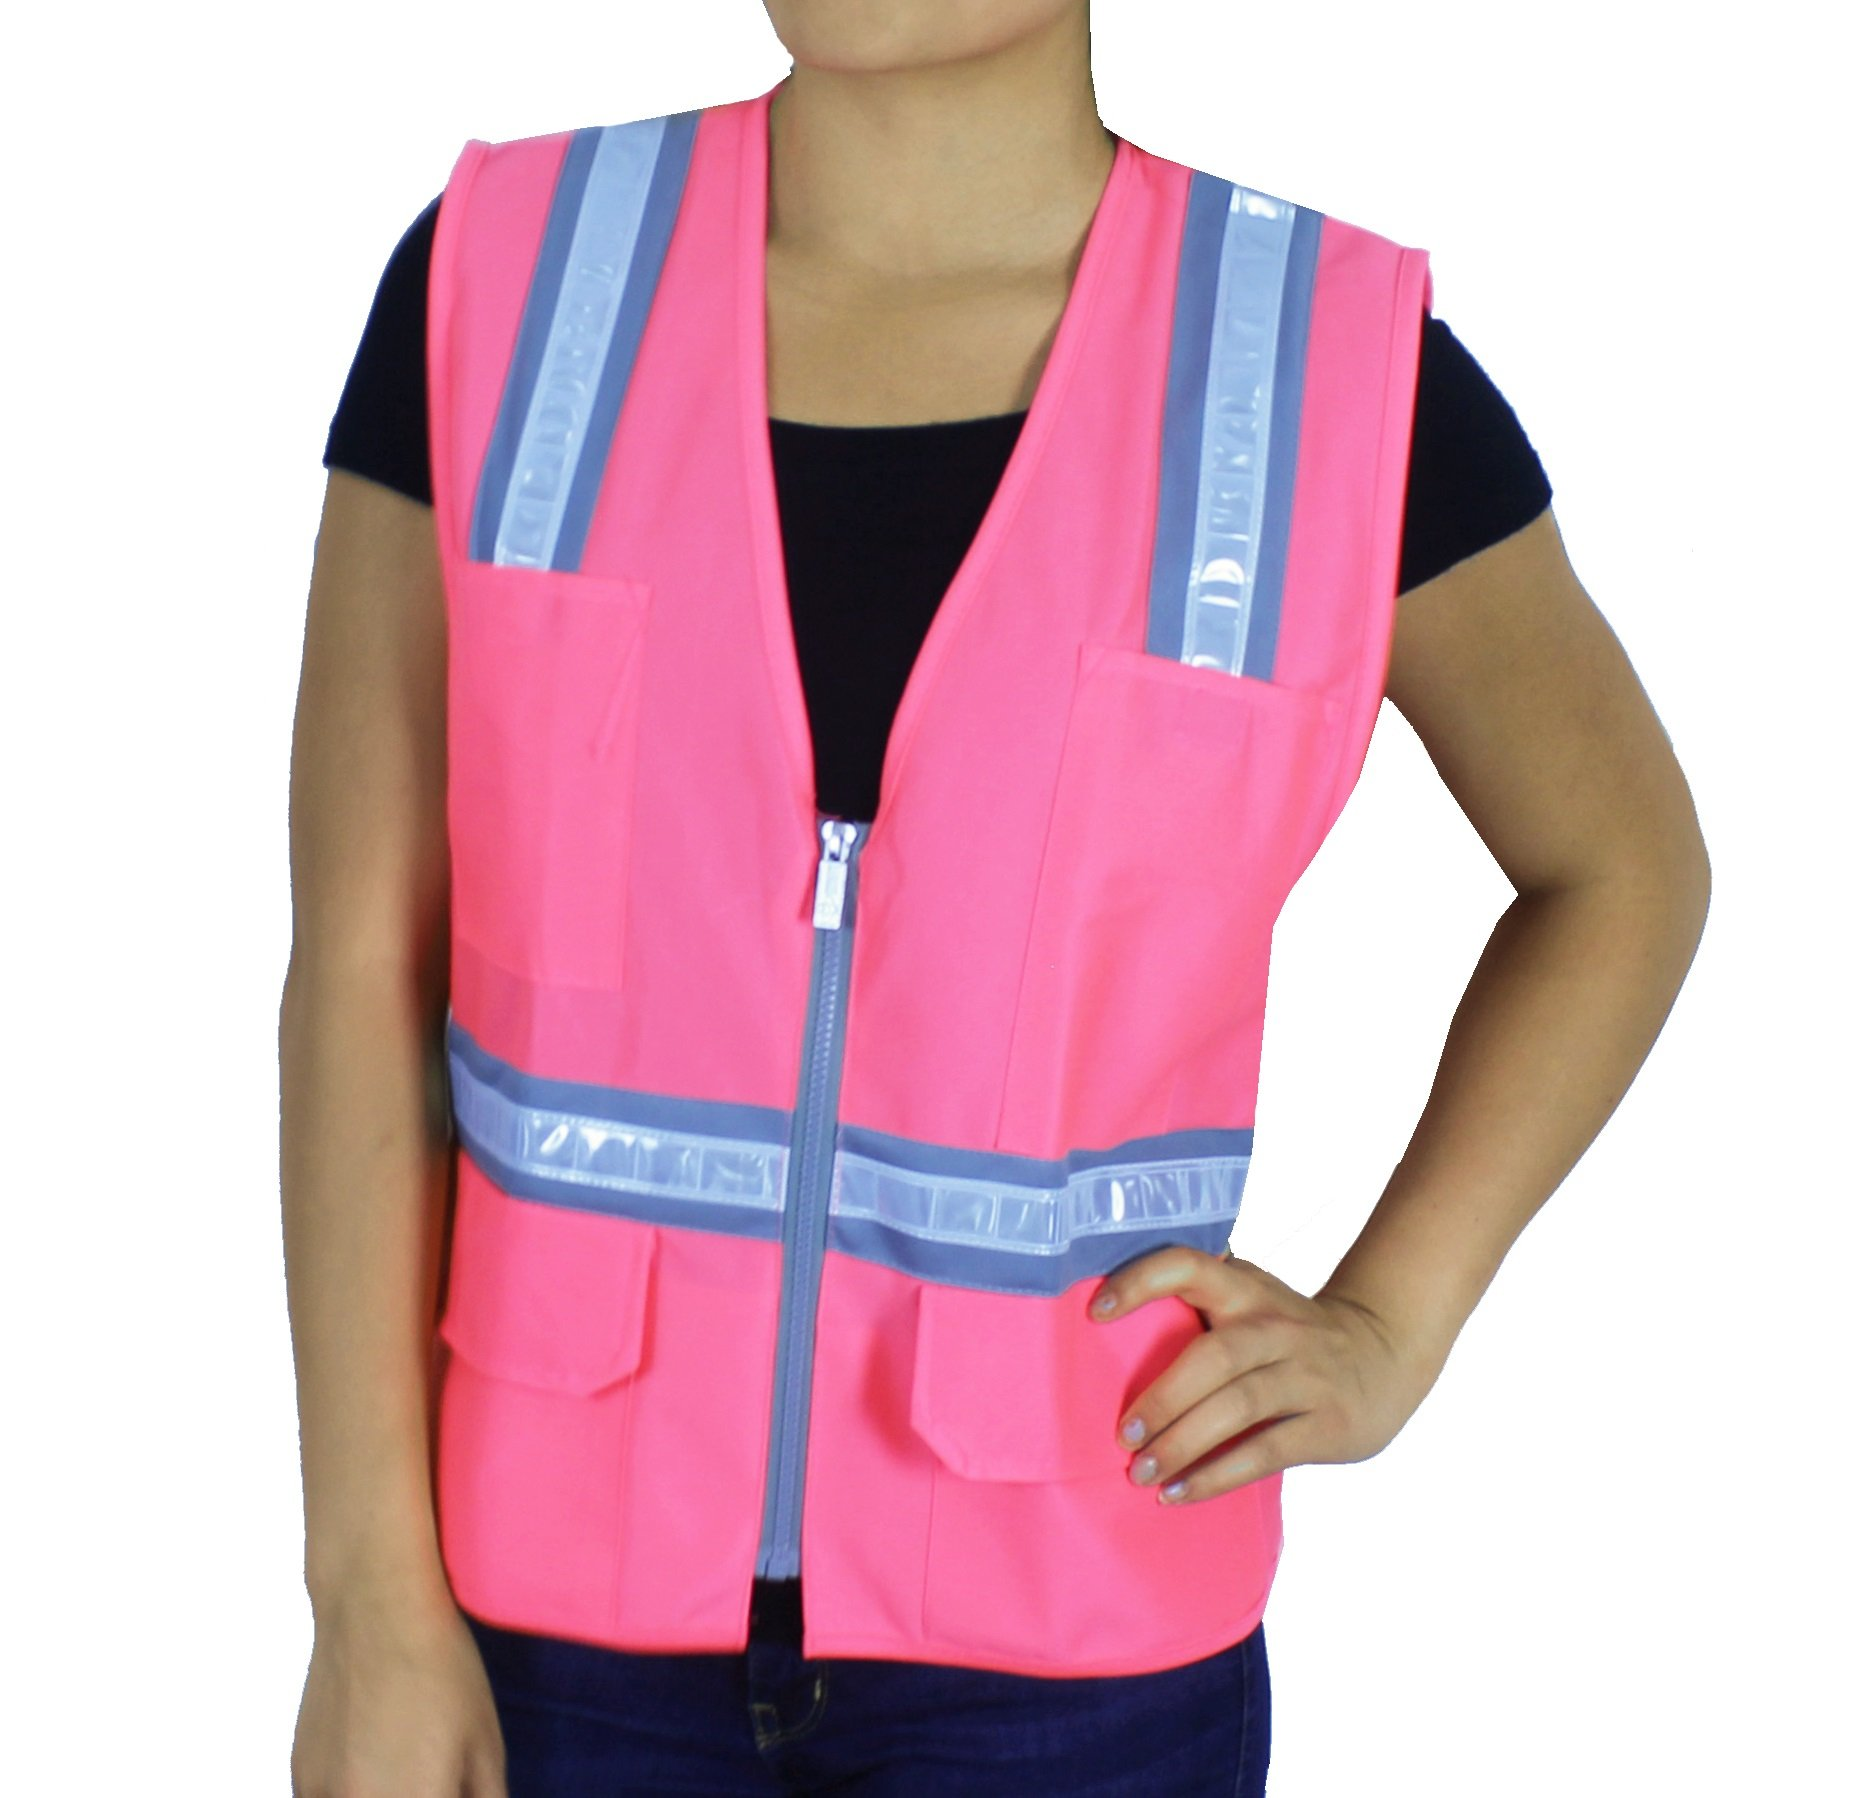 Safety Depot Safety Vest High Visibility Reflective Tape with 4 Lower Pockets, 2 Chest Pockets with Pen Dividers 8038-PK (Pink, Medium)